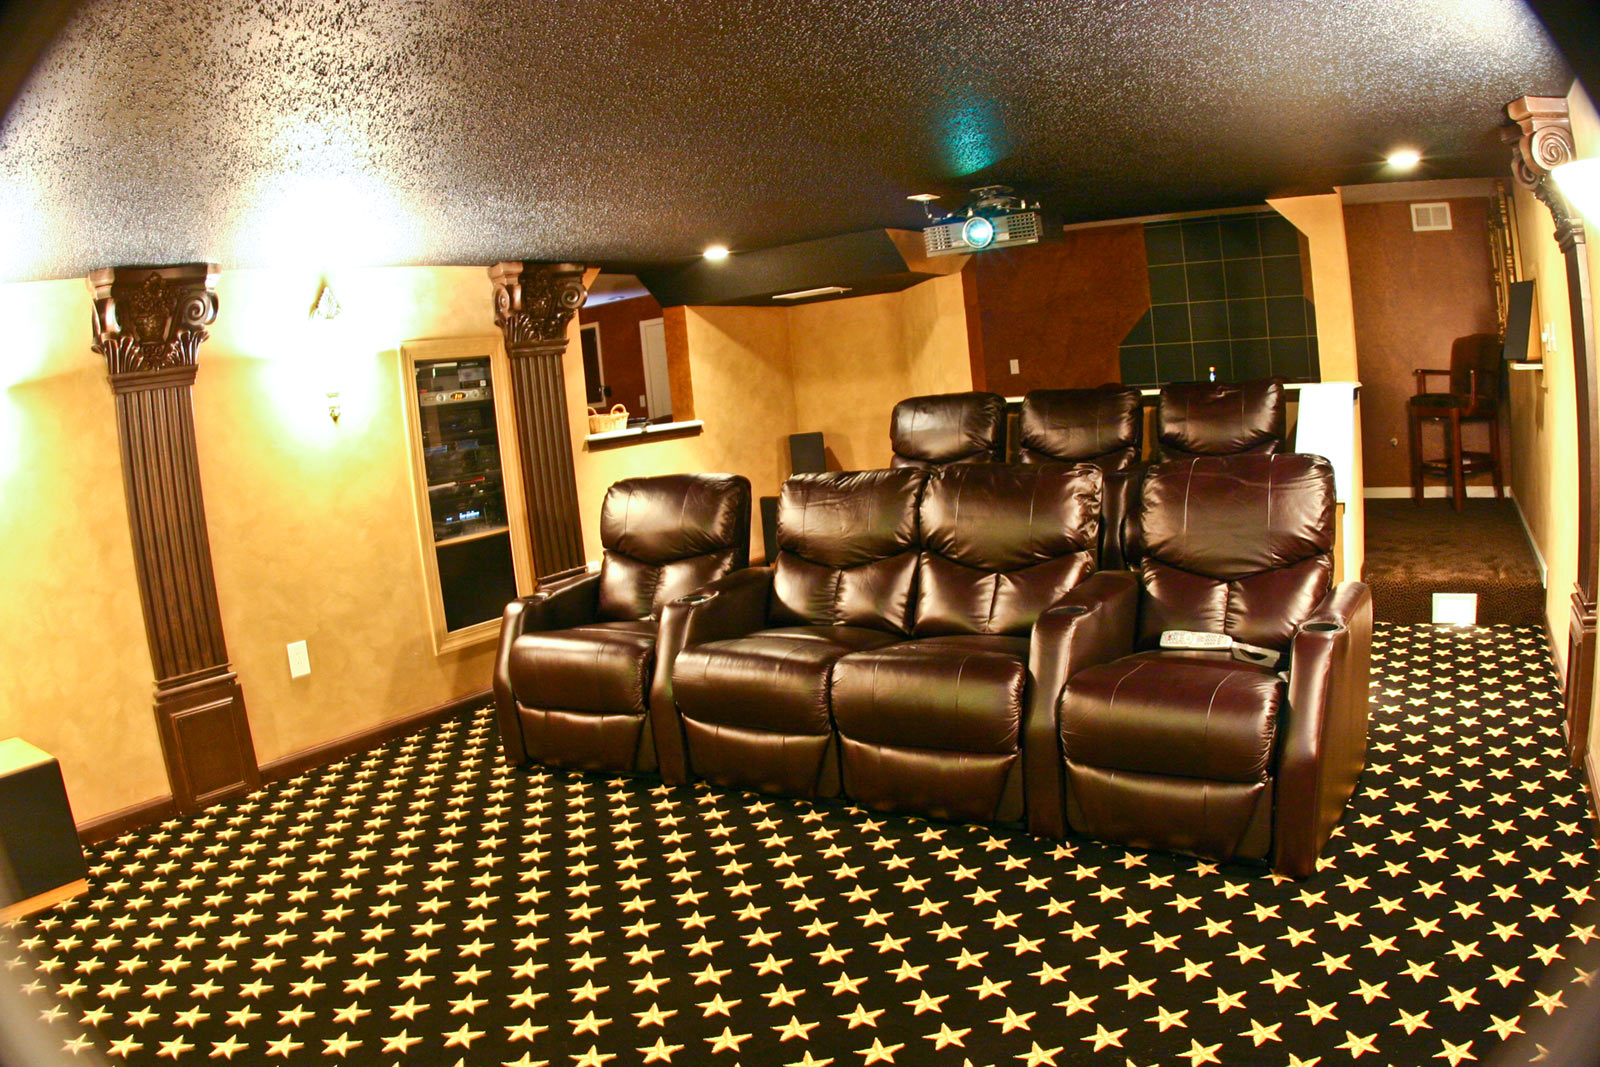 Star Studded Home Theatre